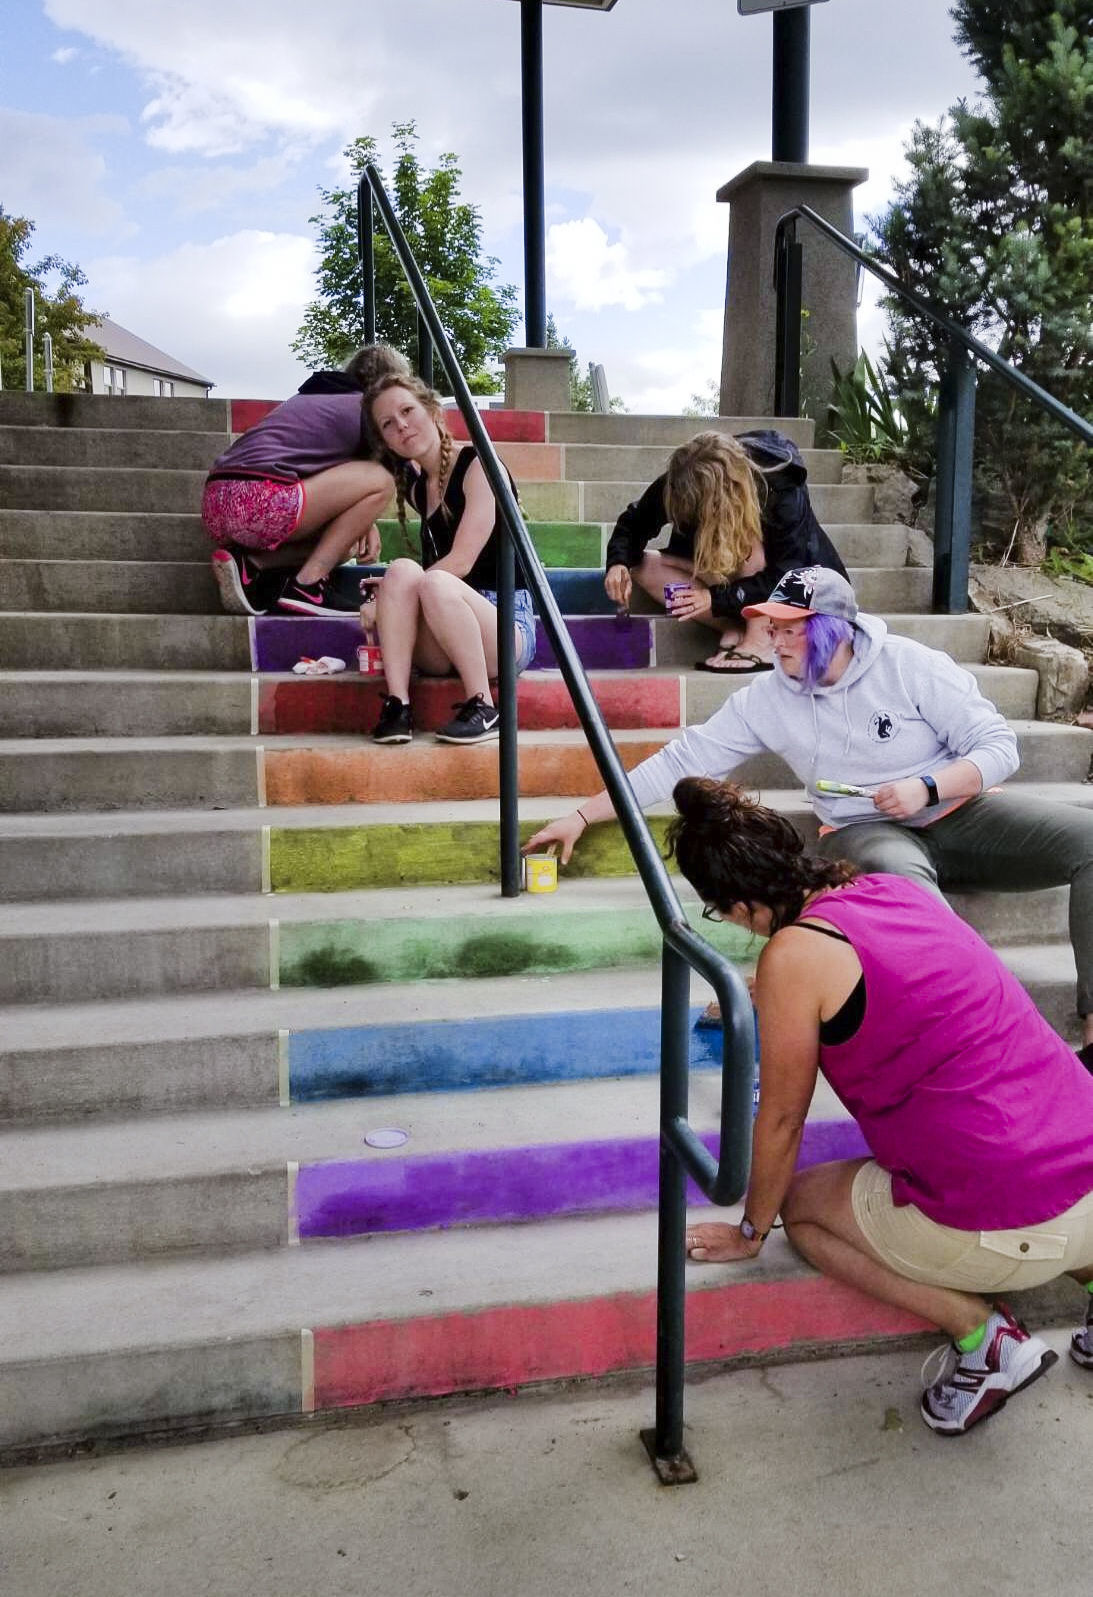 The steps of St. Paul's United Methodist Church are painted rainbow colors